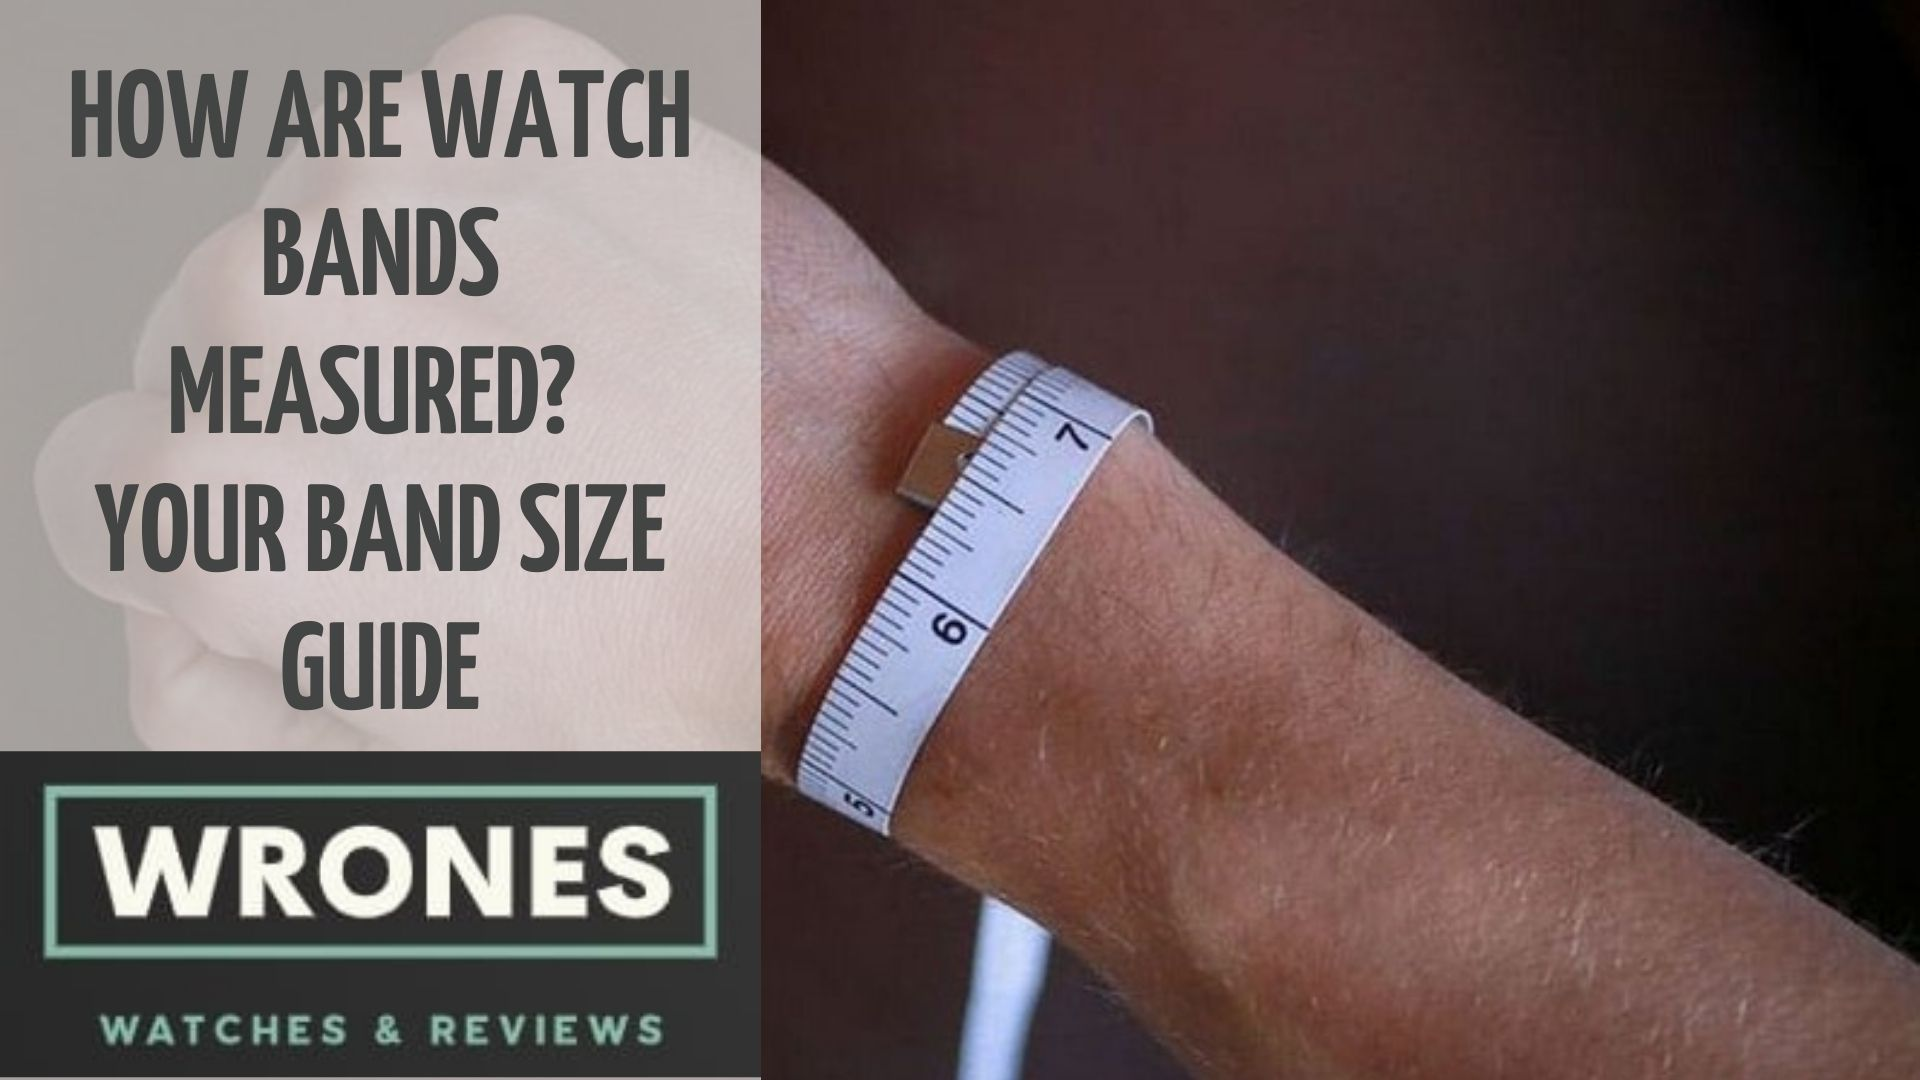 How are watch bands measured Your Band Size Guide wrones